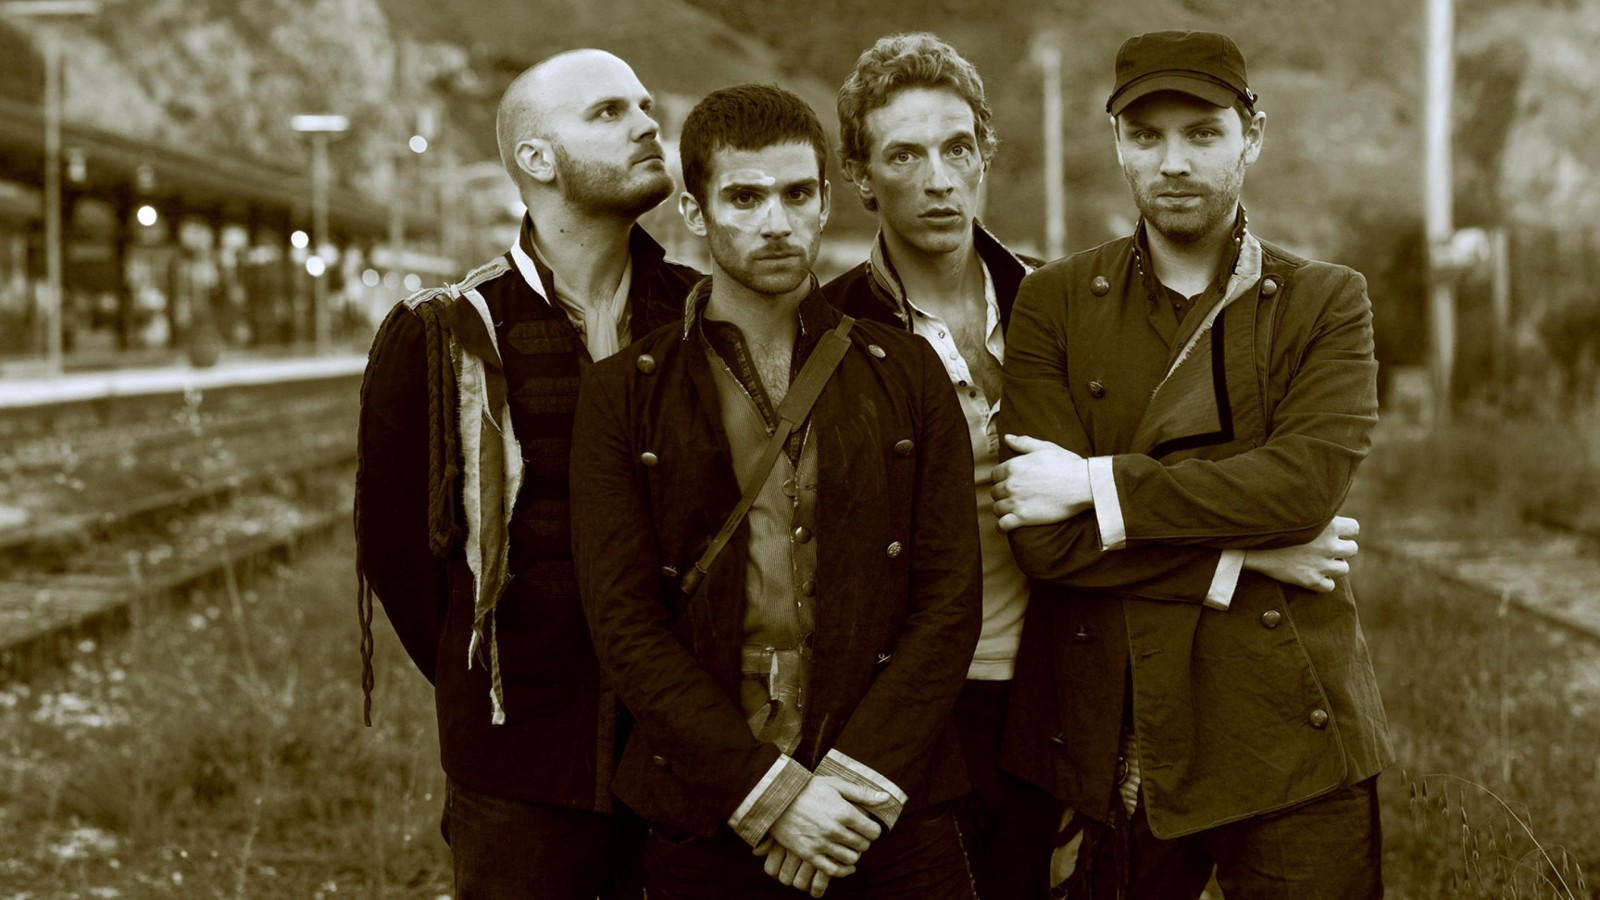 Coldplay Band Sepia Wallpaper for Desktop 1600x900